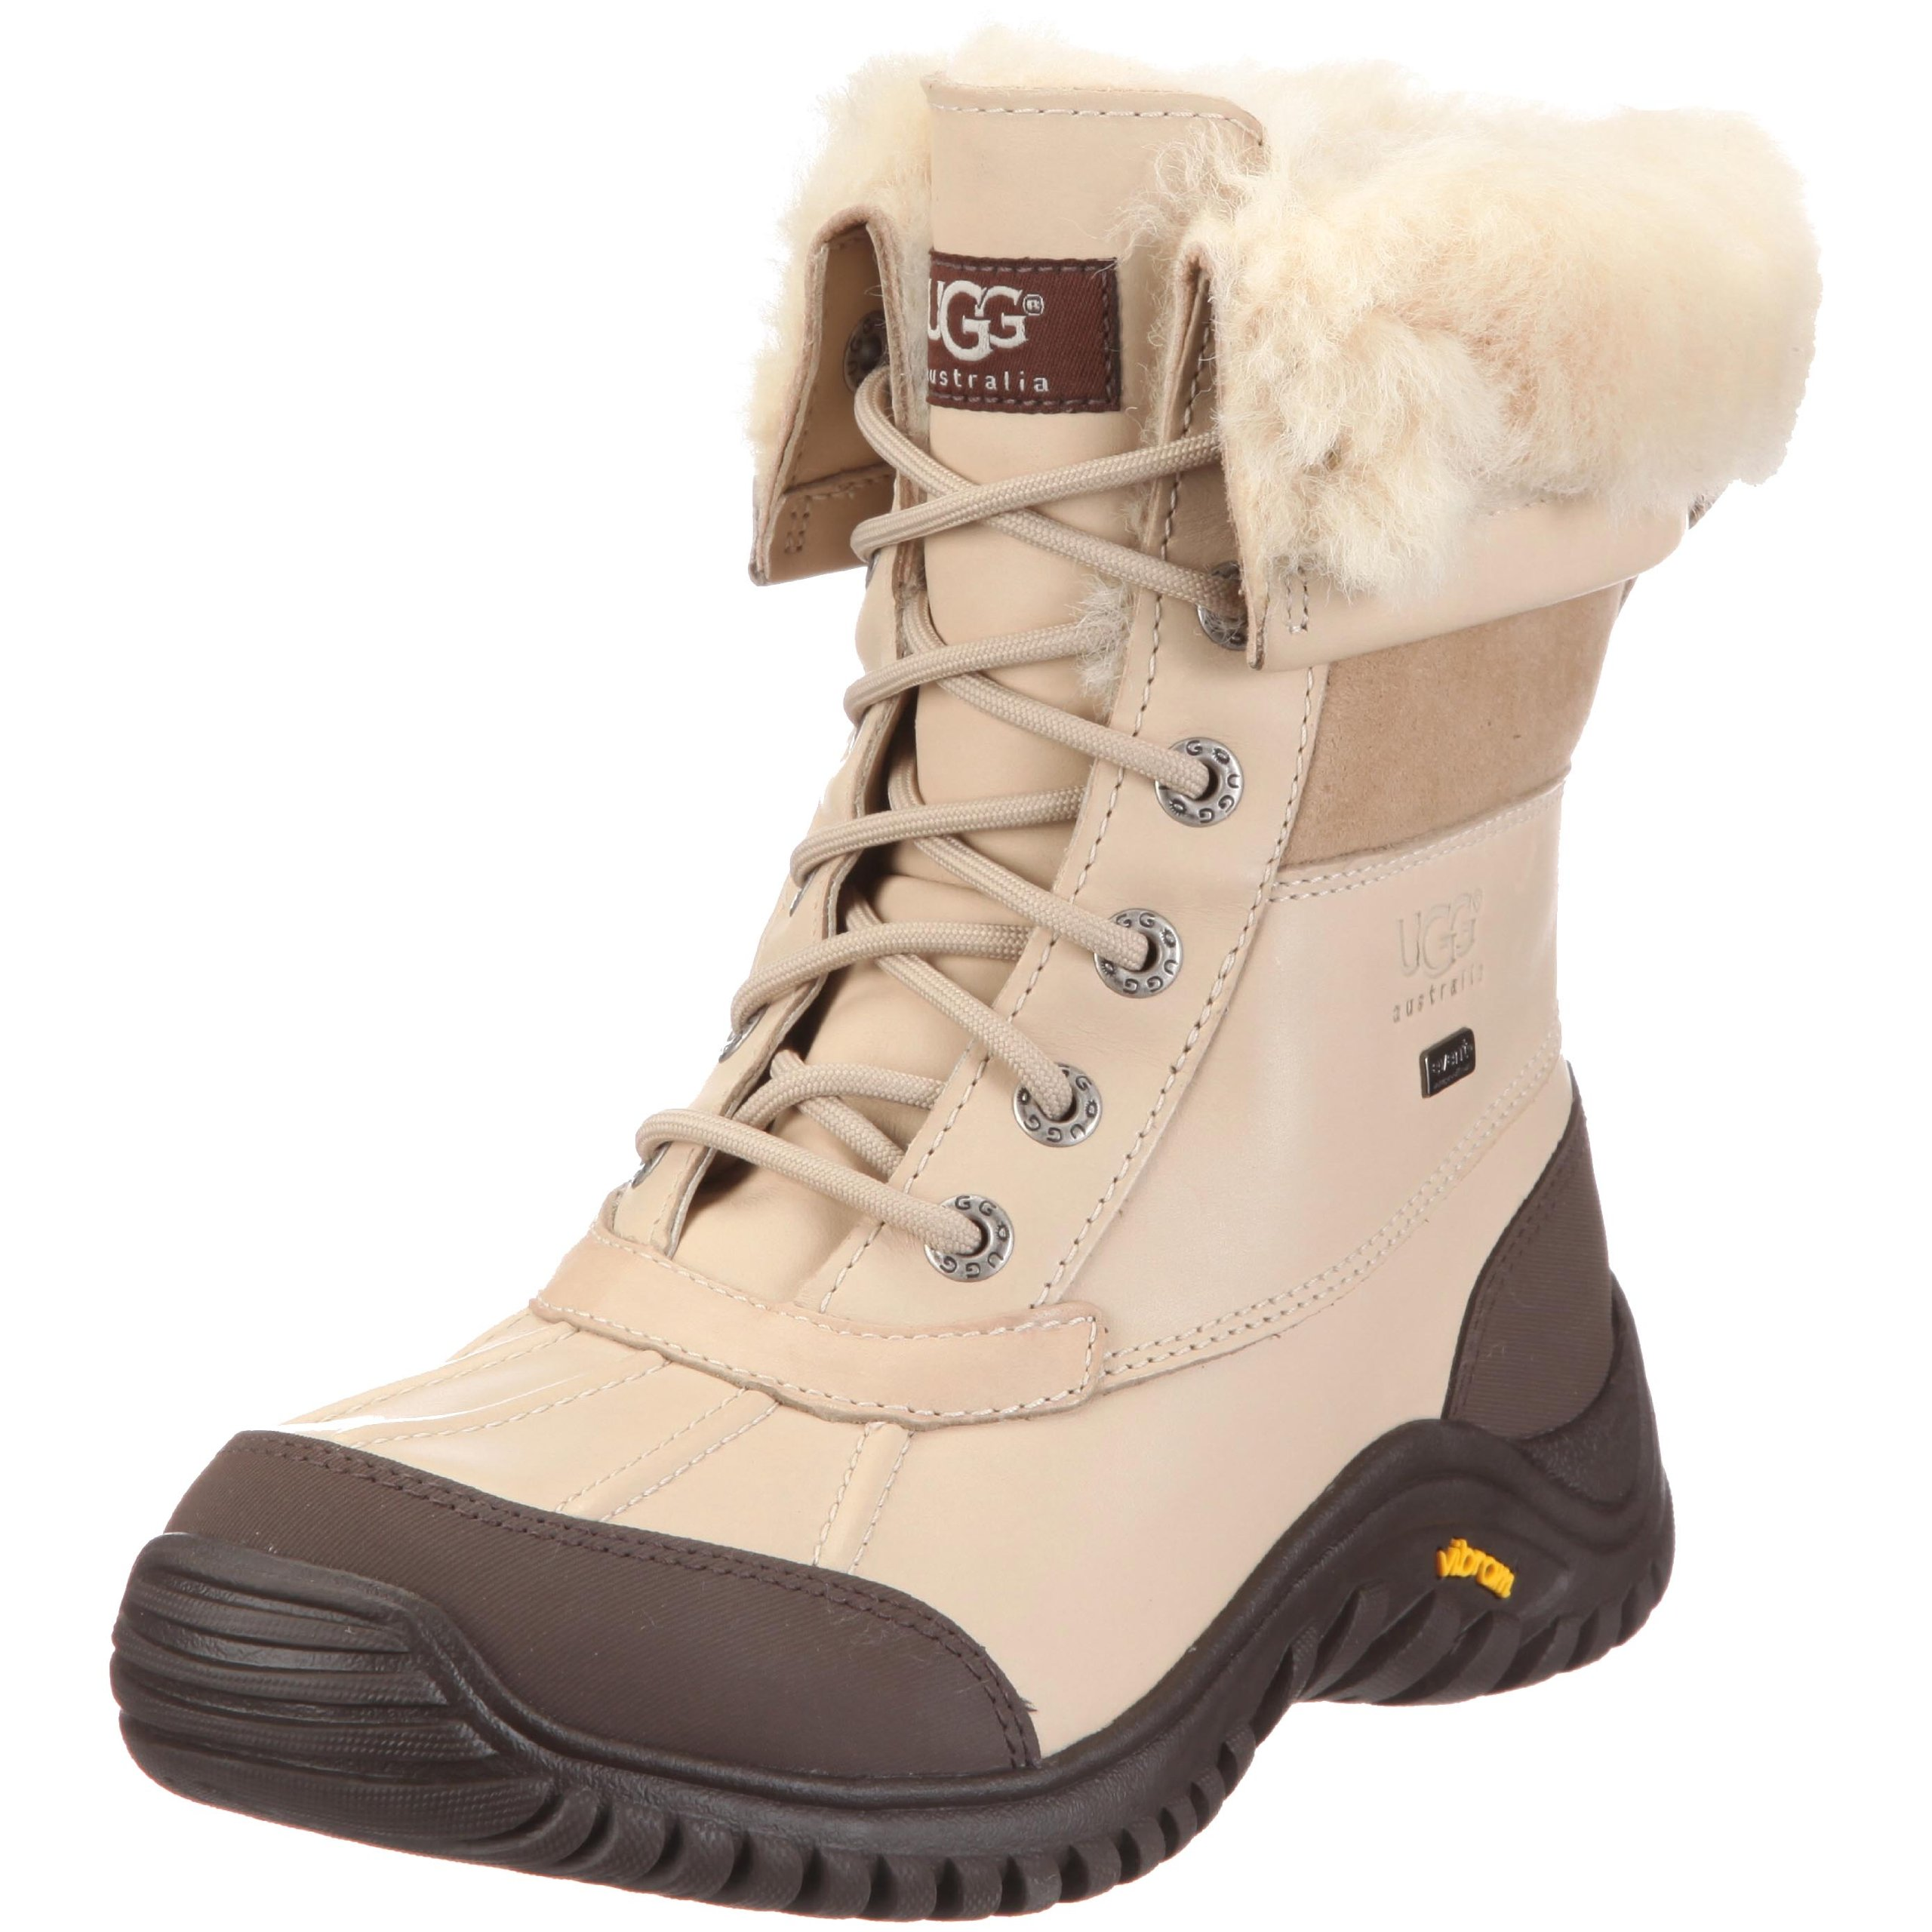 UGG Women's Adirondack II Winter Boot, Sand, 8 B US by UGG